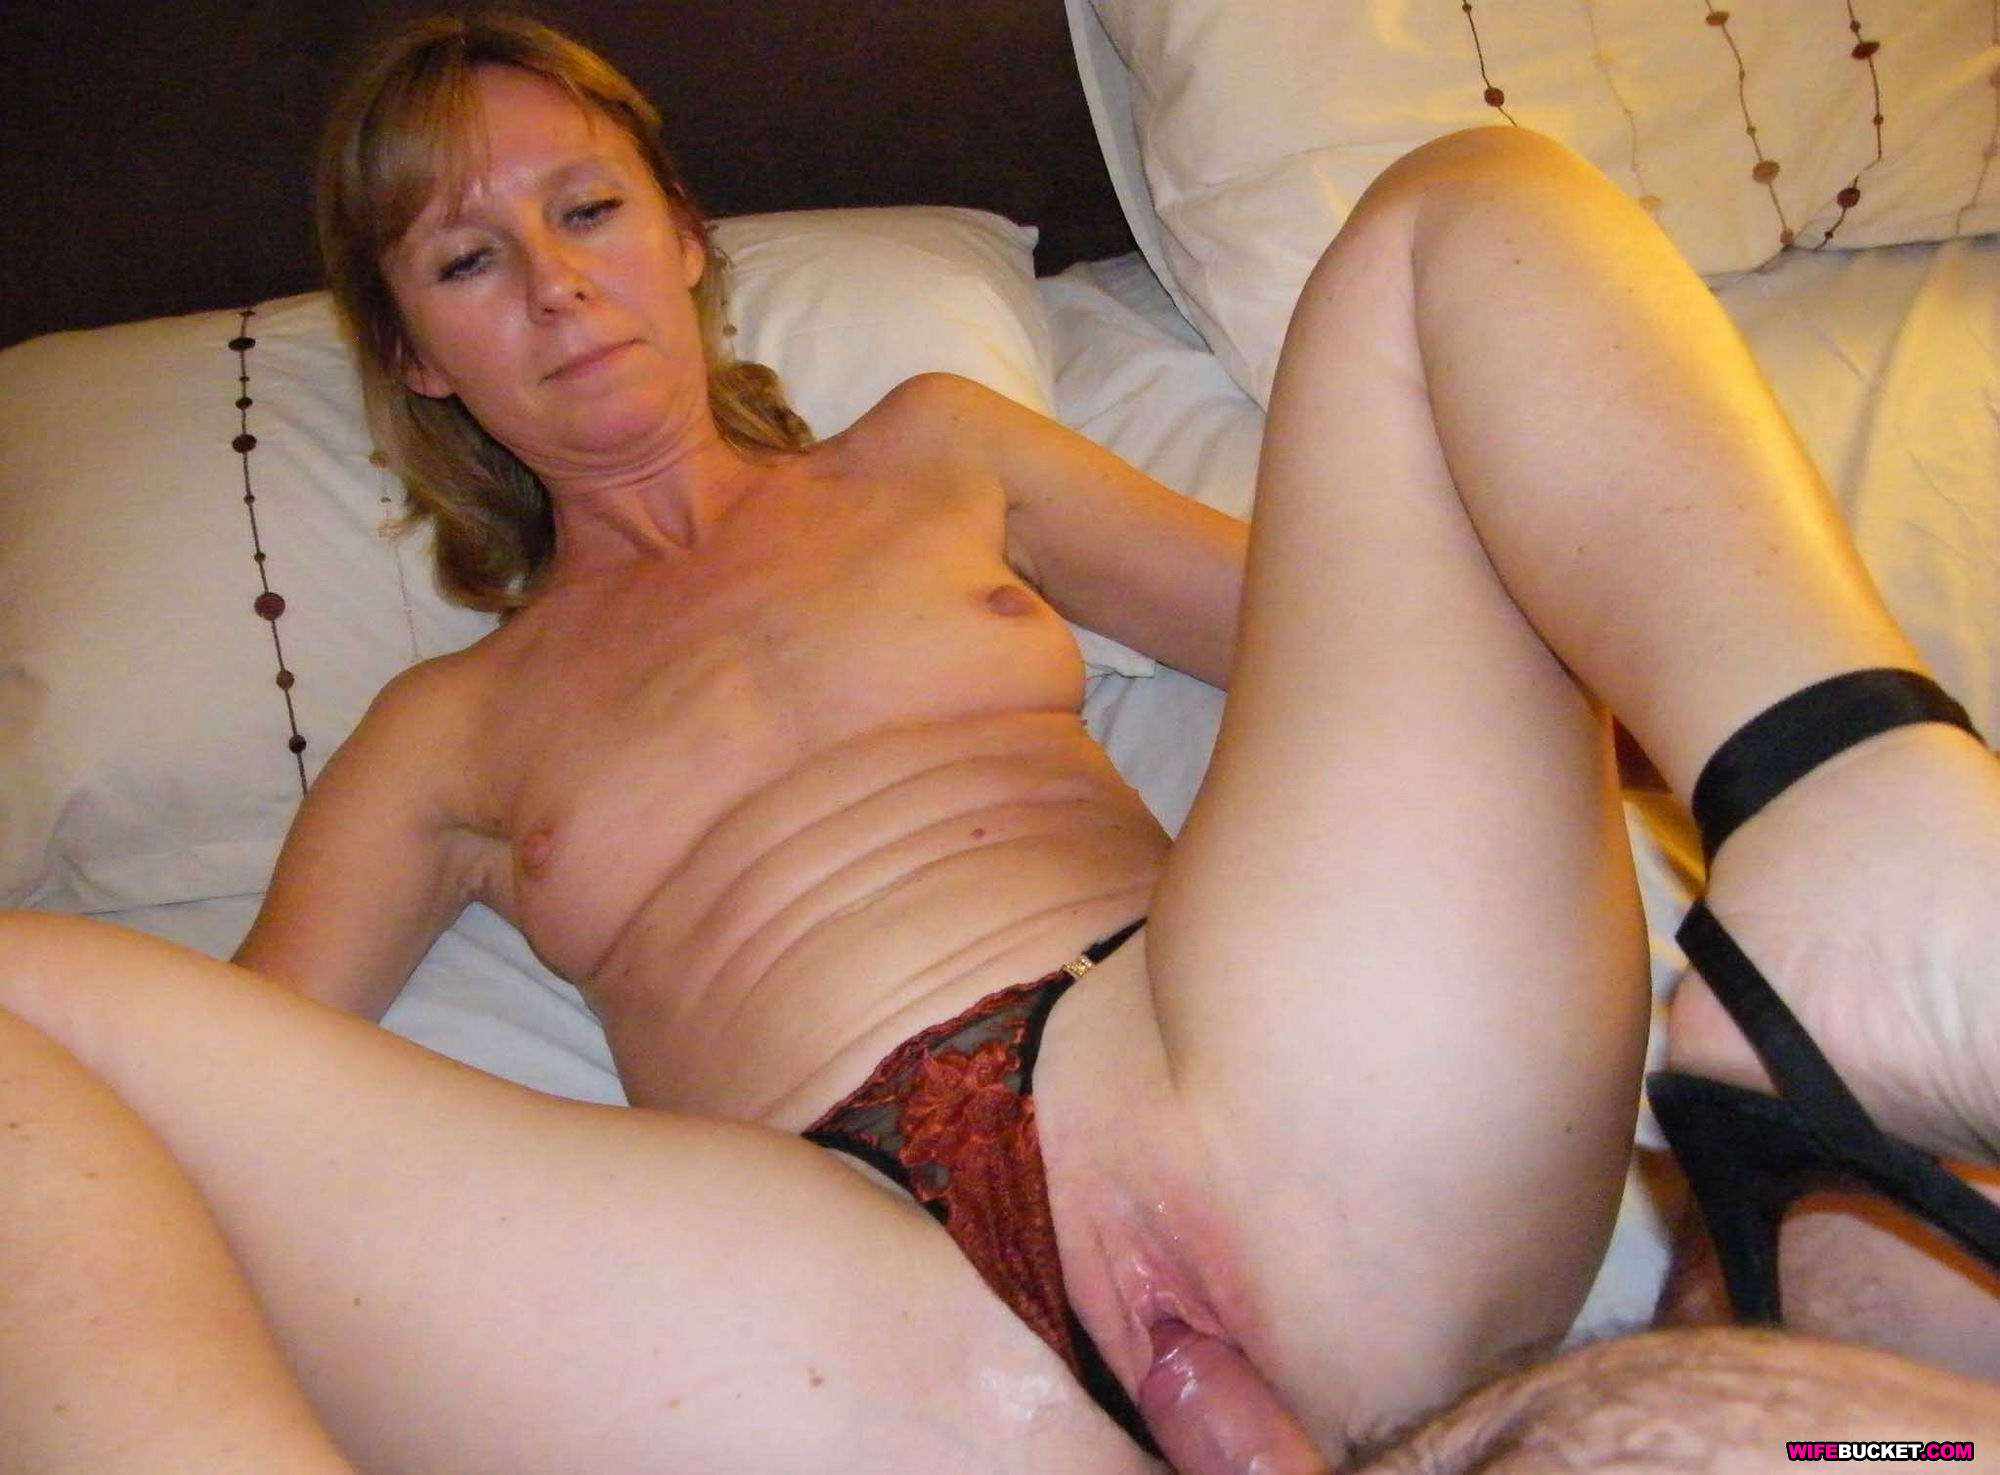 Hot amateur milf wife mature sexy dance and strip naked 7